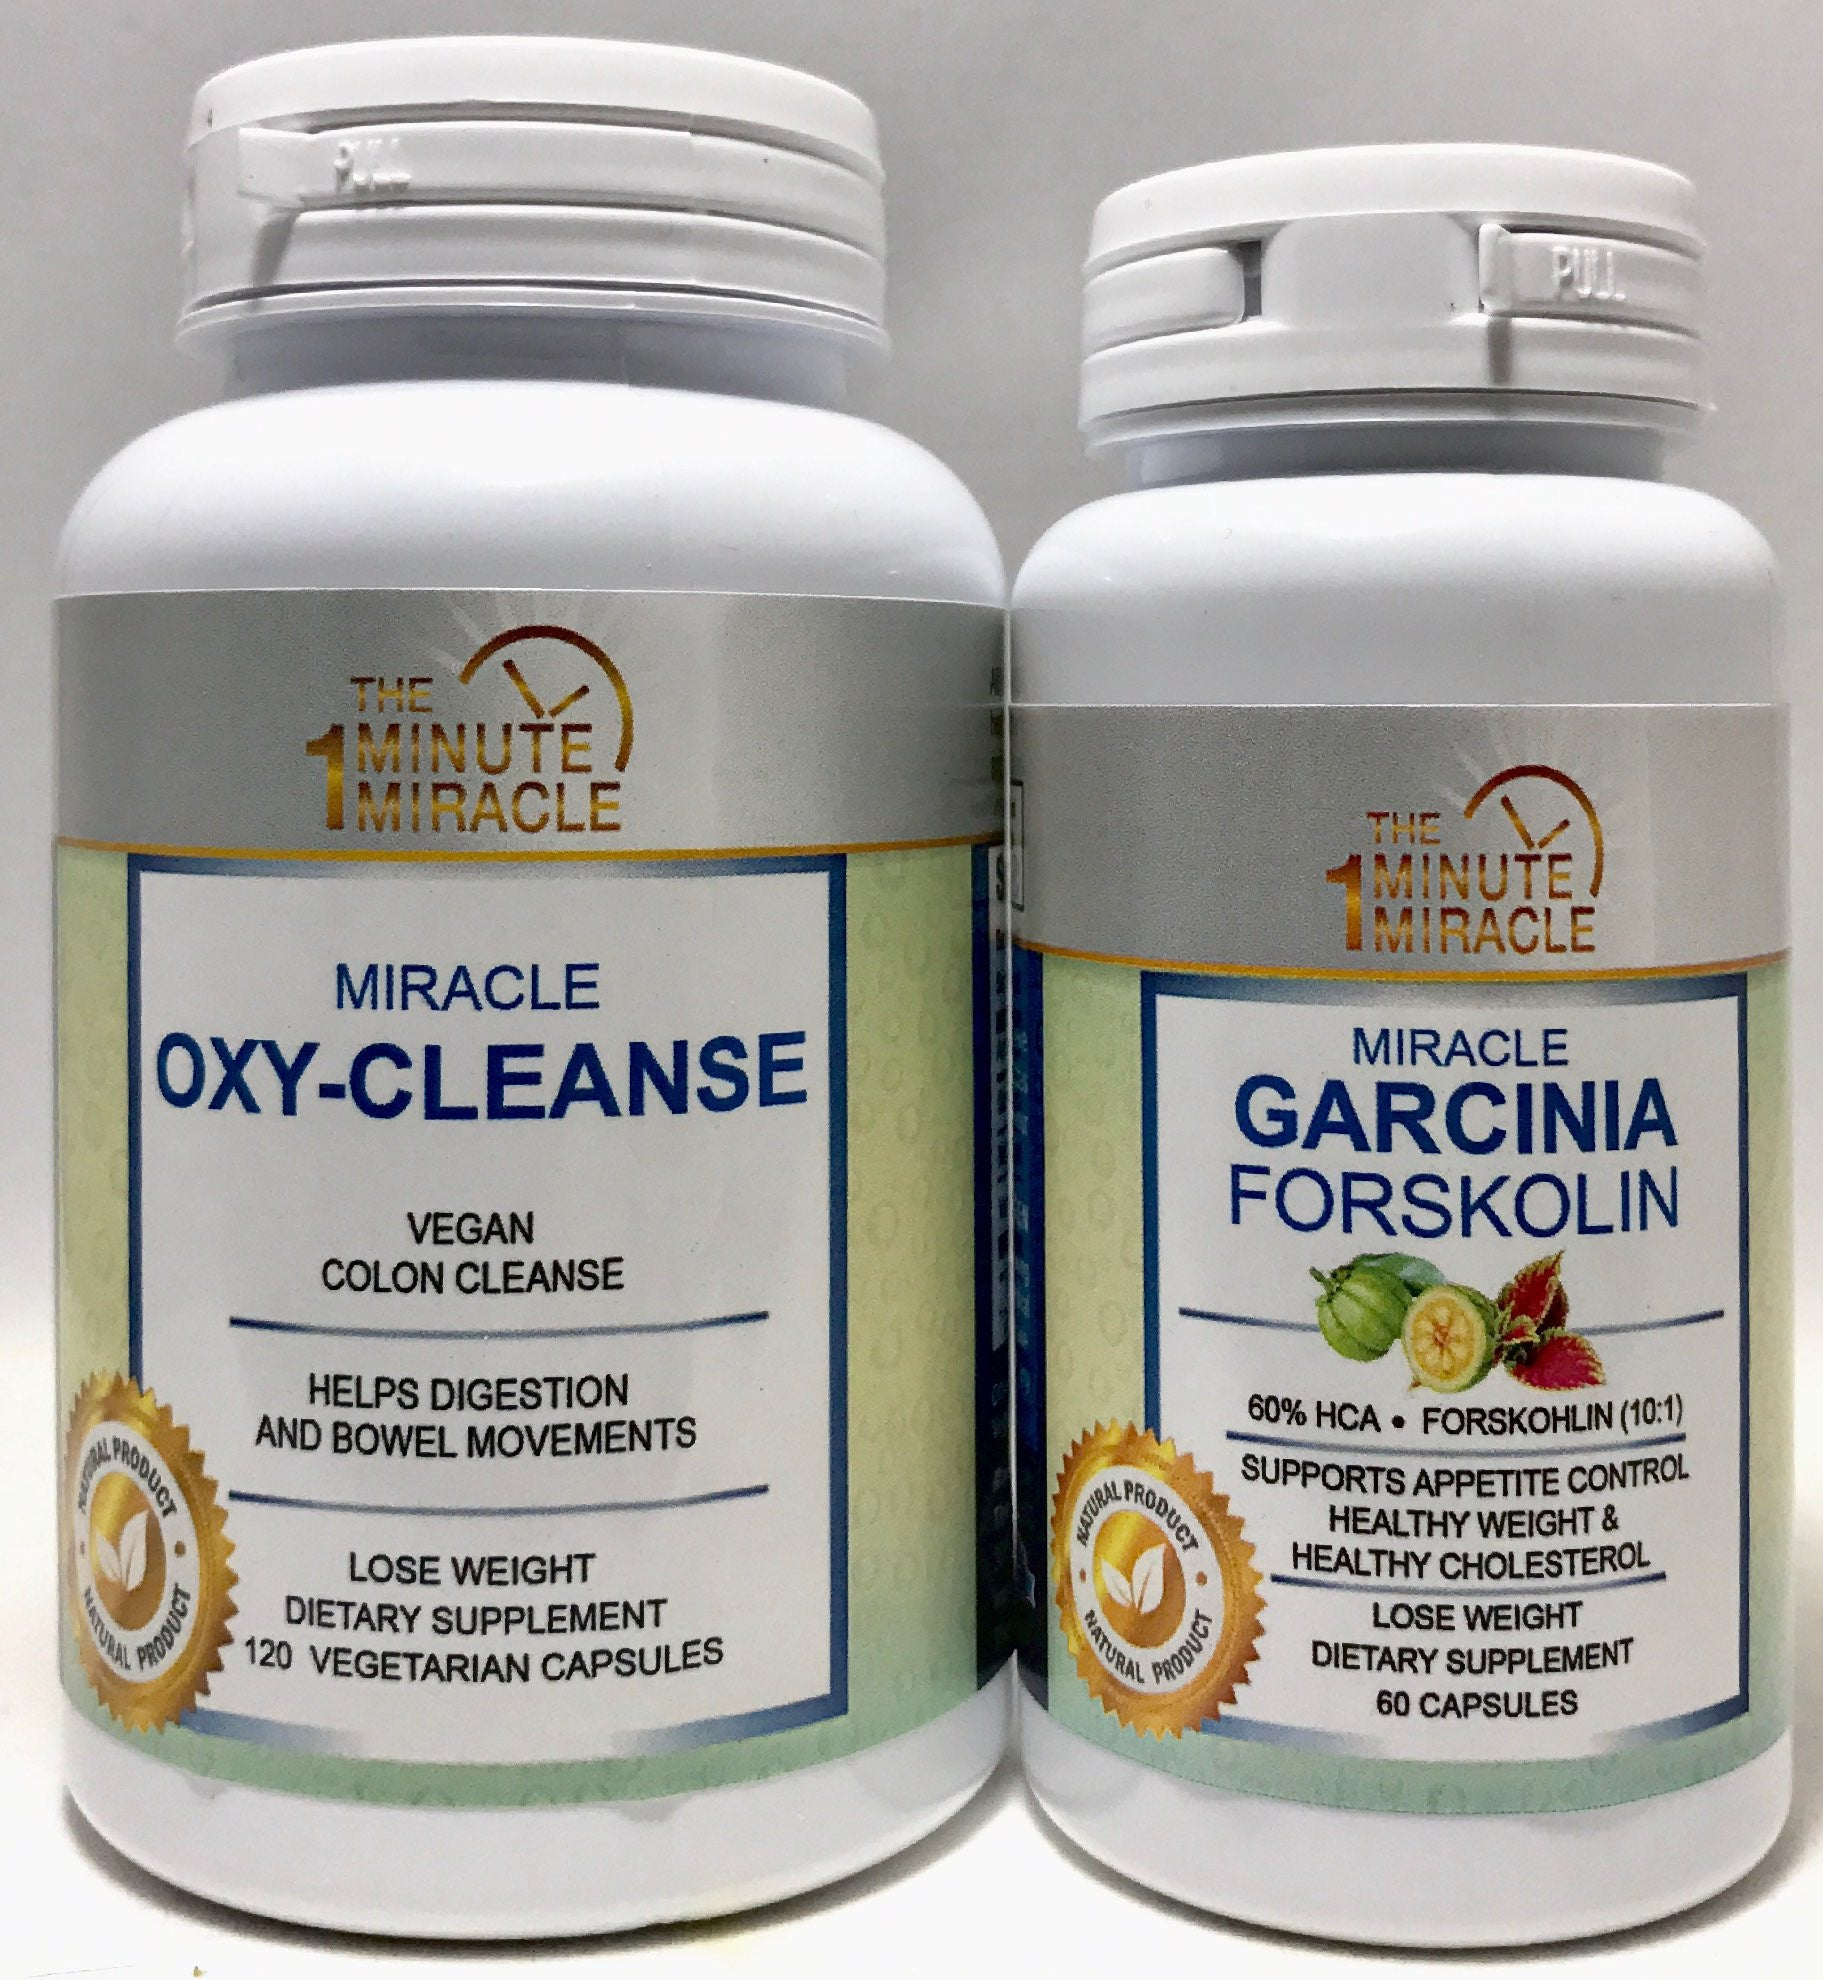 Garcinia Forskolin Extract 60 Capsules and Oxy-Cleanse 120 Vegan Capsules